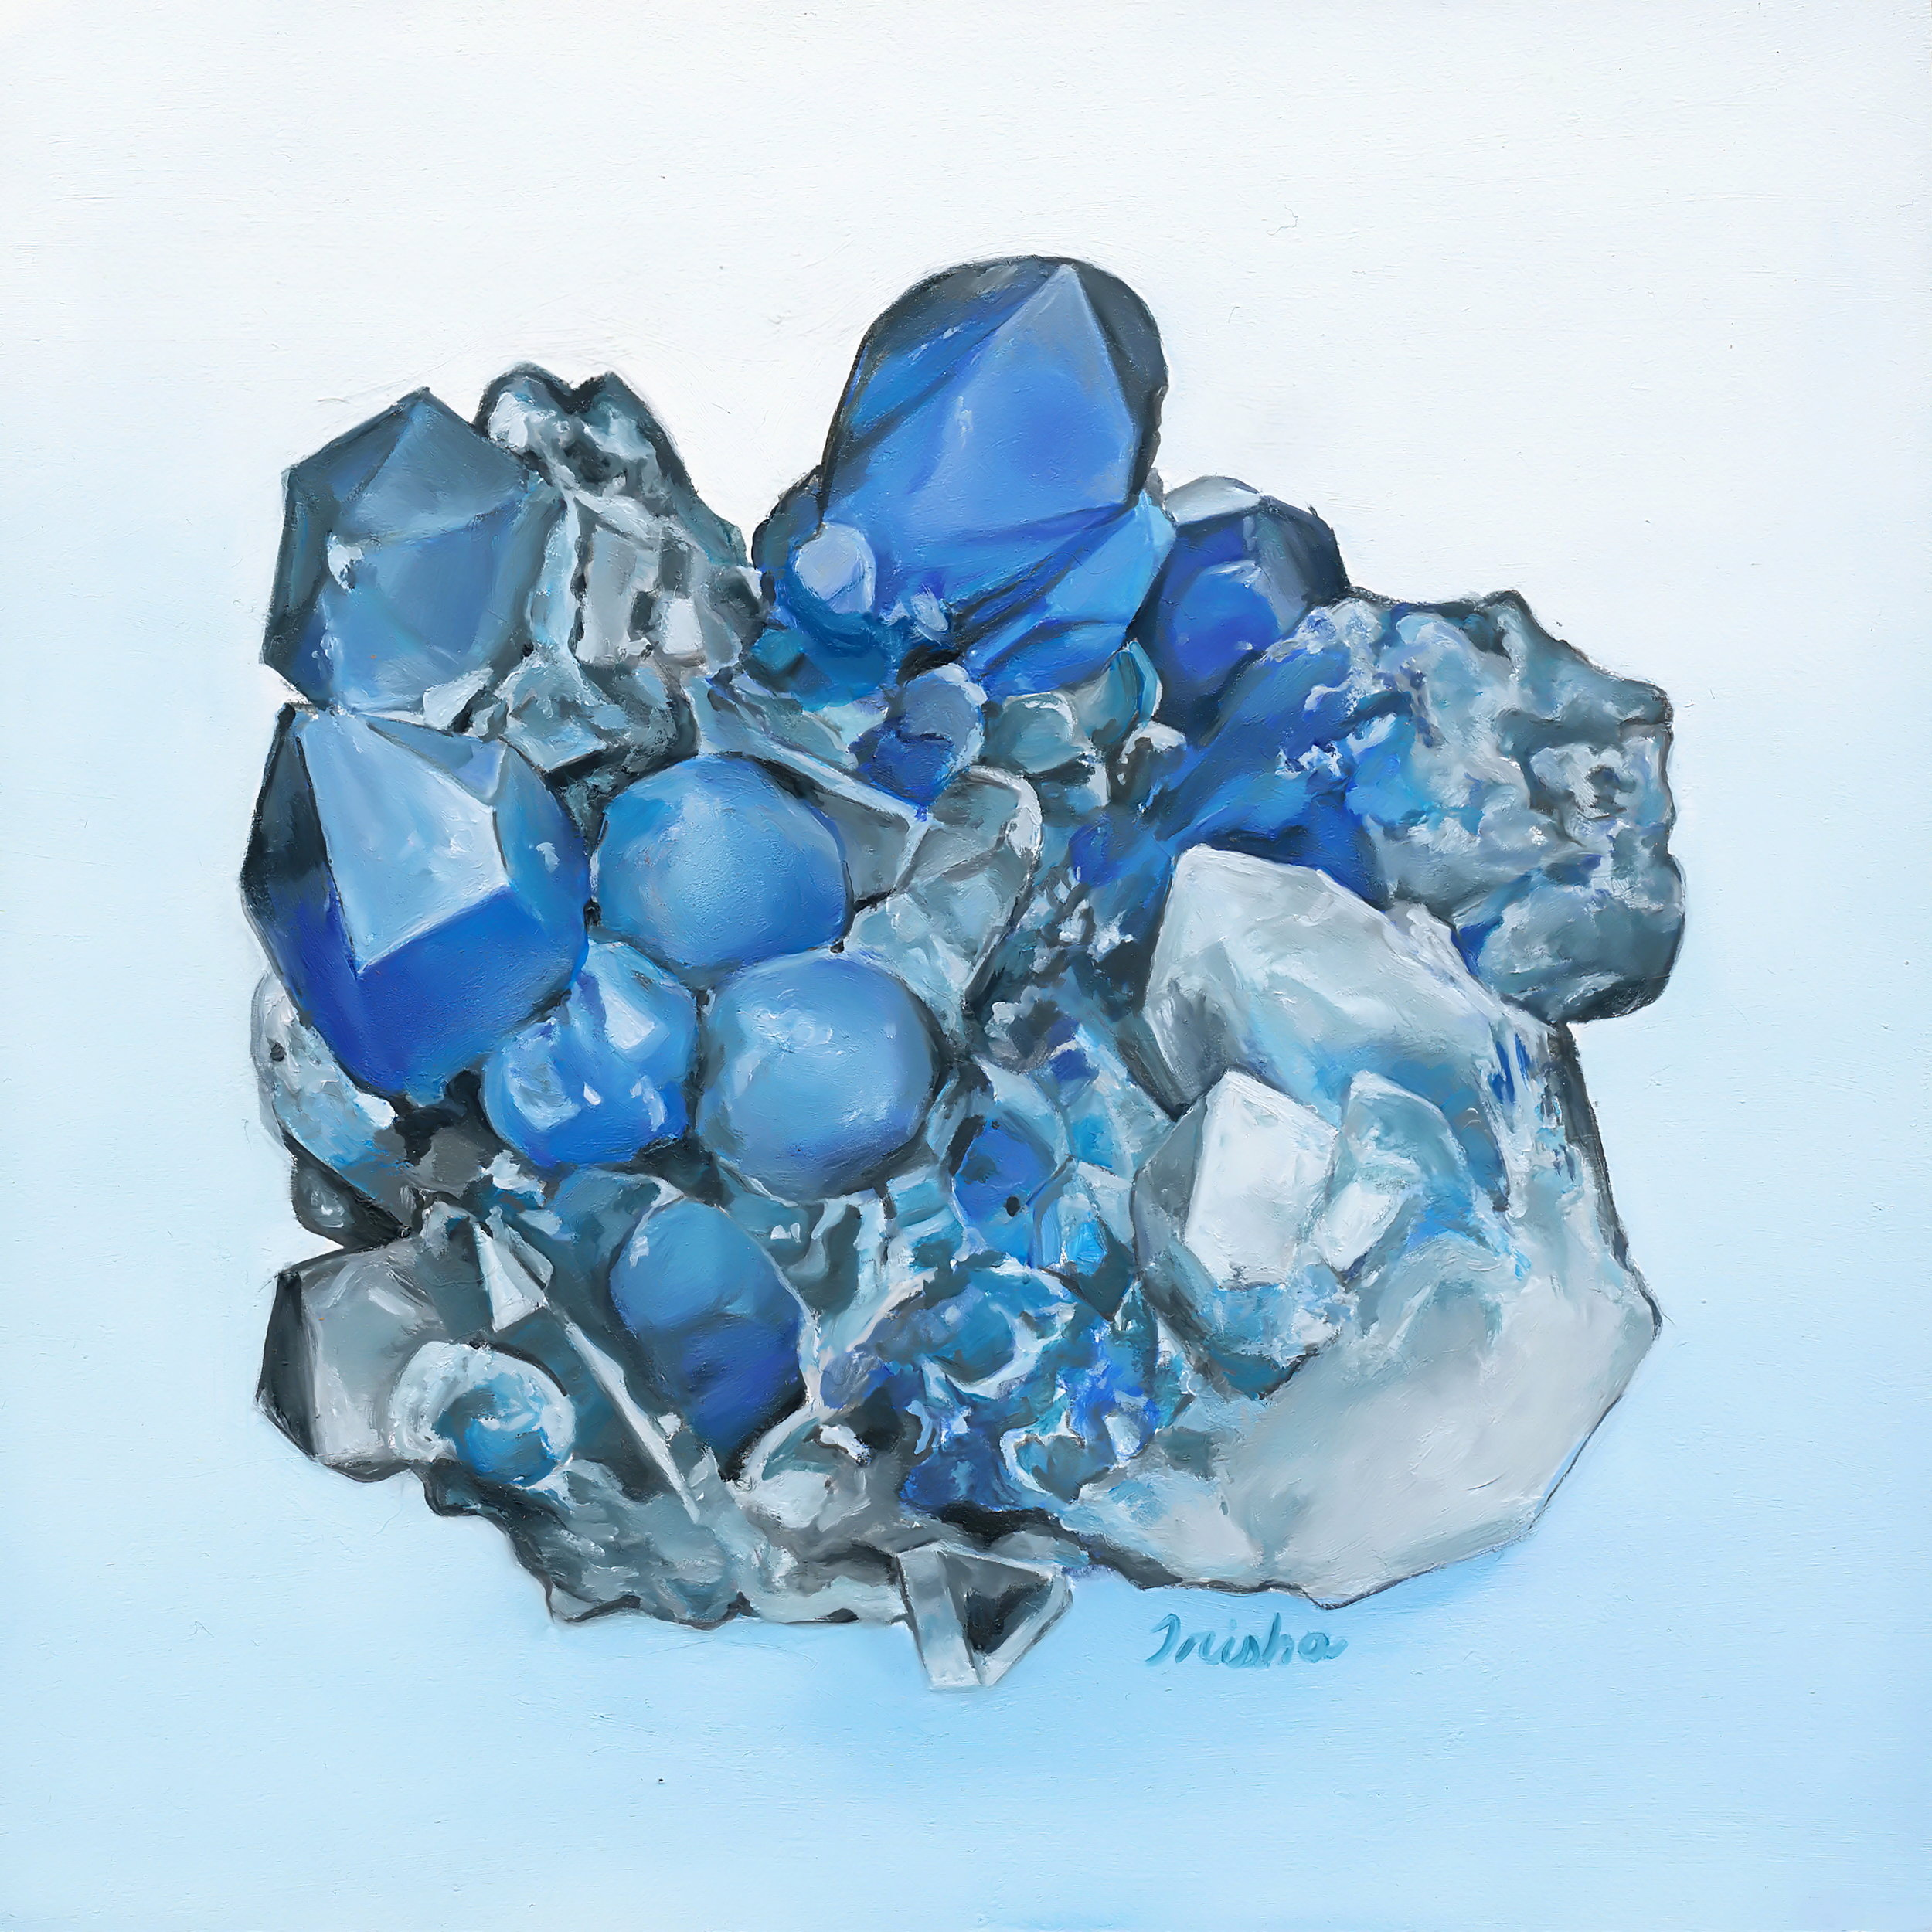 Quartz Papagoite Oil Painting.jpg